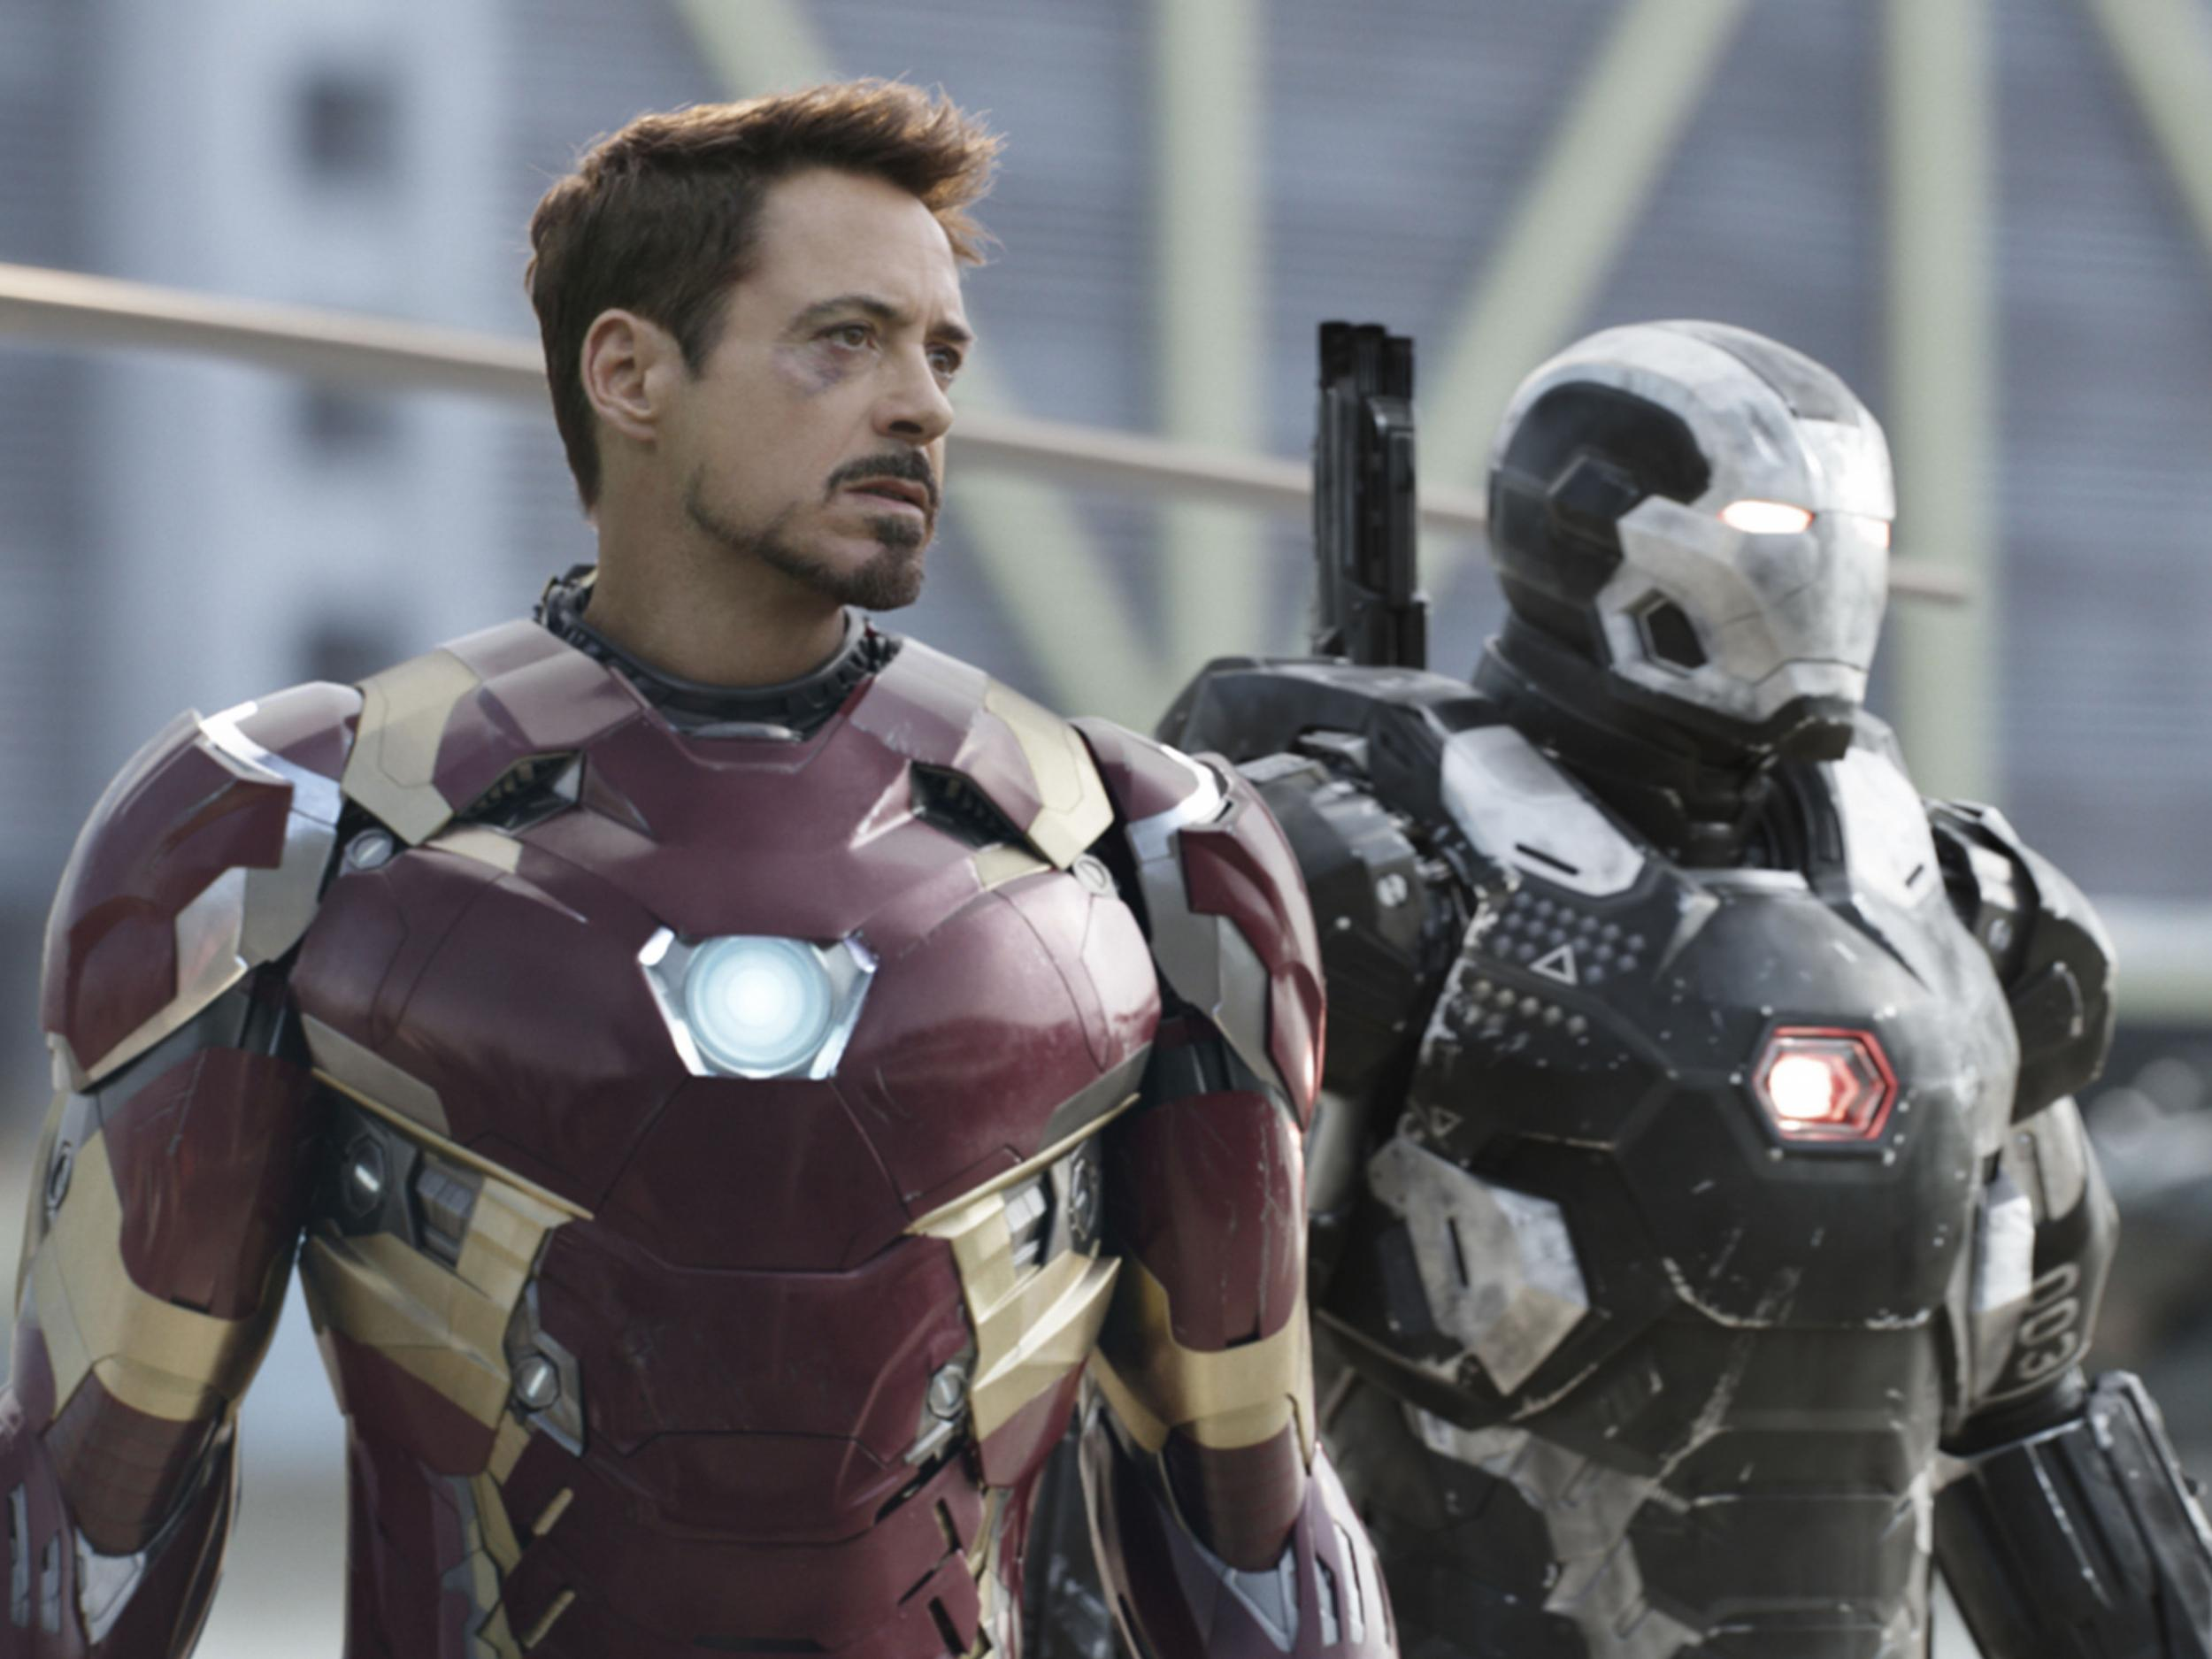 Robert Downey Jr Wants to Clean up the Earth Using Robots